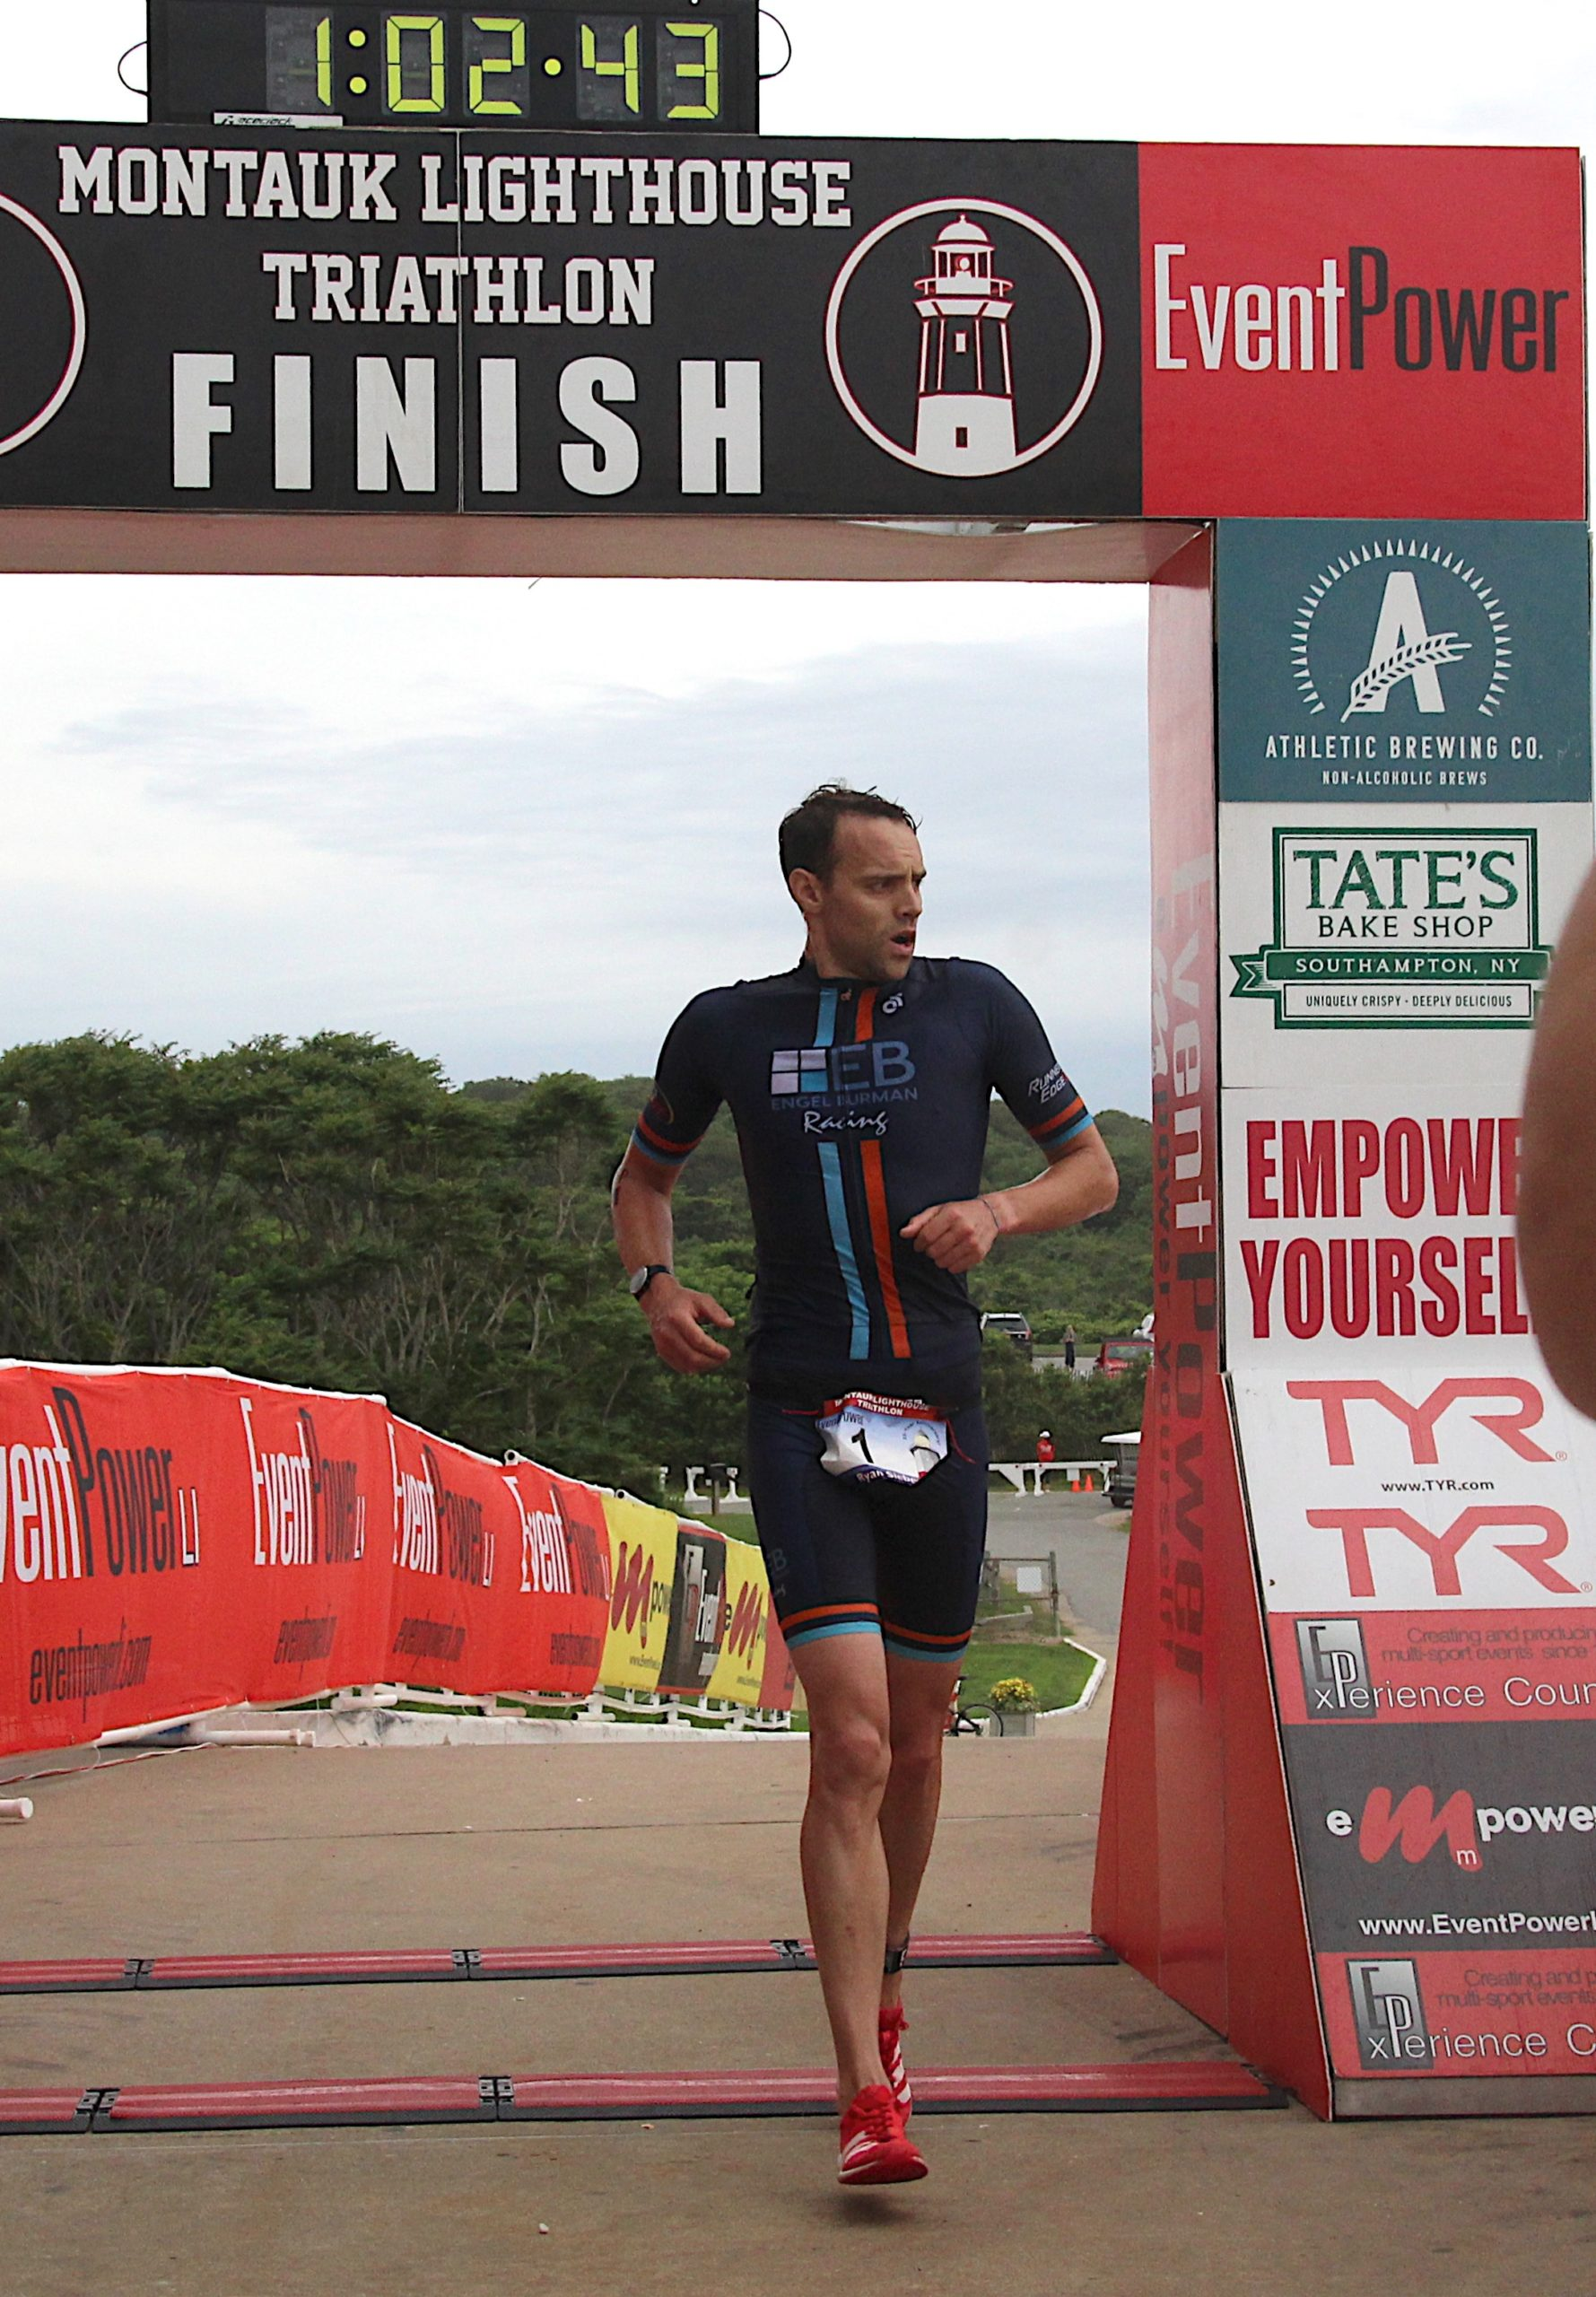 Tom Eikelberg crosses the finish line to become champion of the 25th annual Montauk Lighthouse Triathlon on Sunday morning.